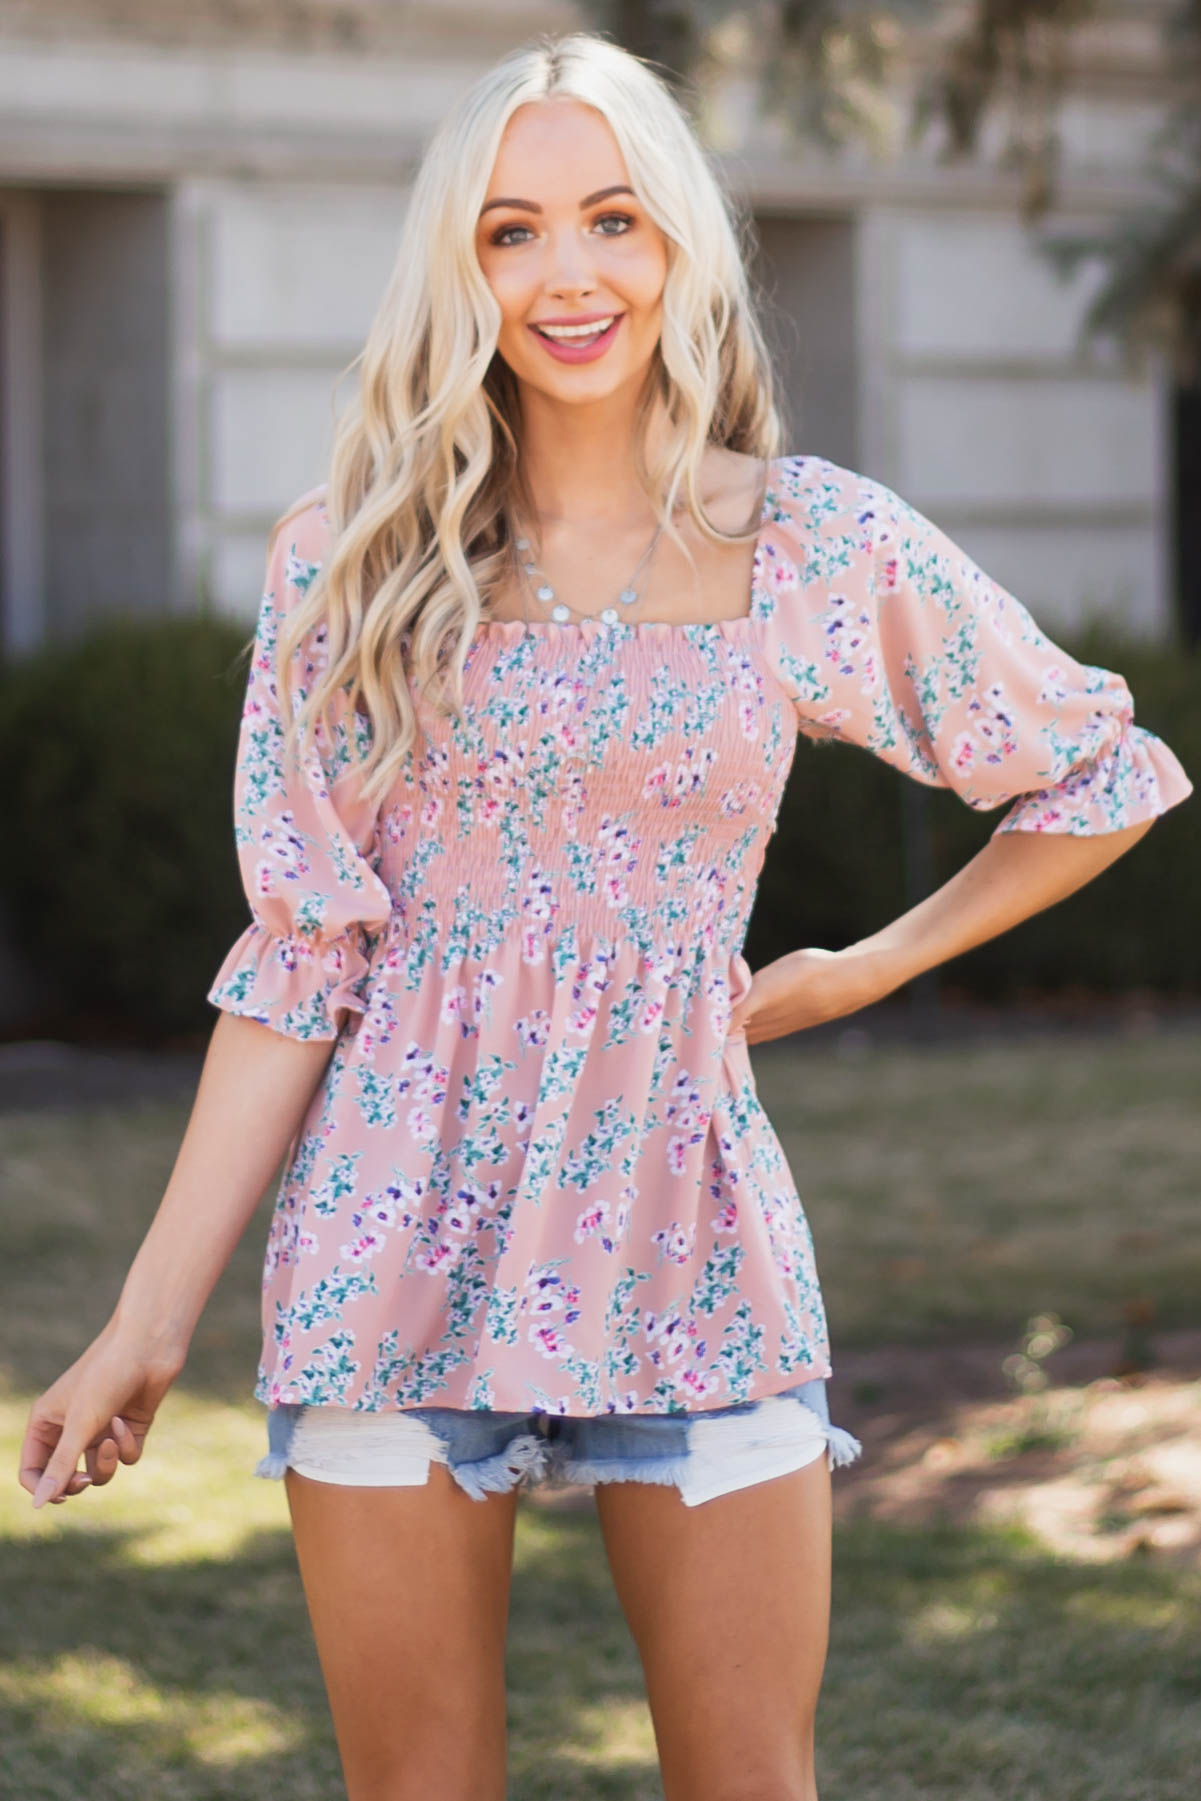 Dusty Rose Floral Square Neck Blouse with Smocking Detail